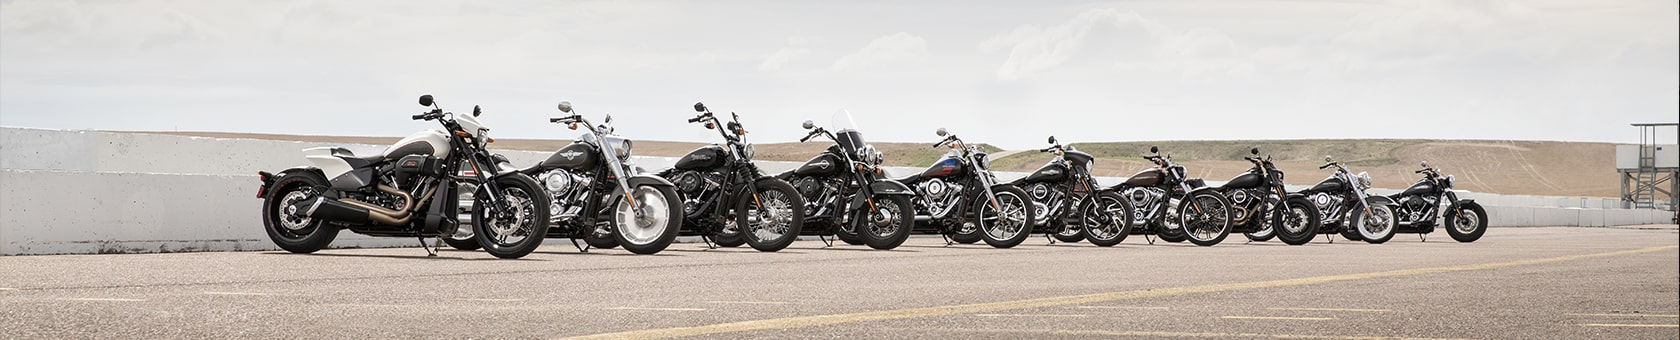 Image of 2019 line-up of Harley Motorcycles